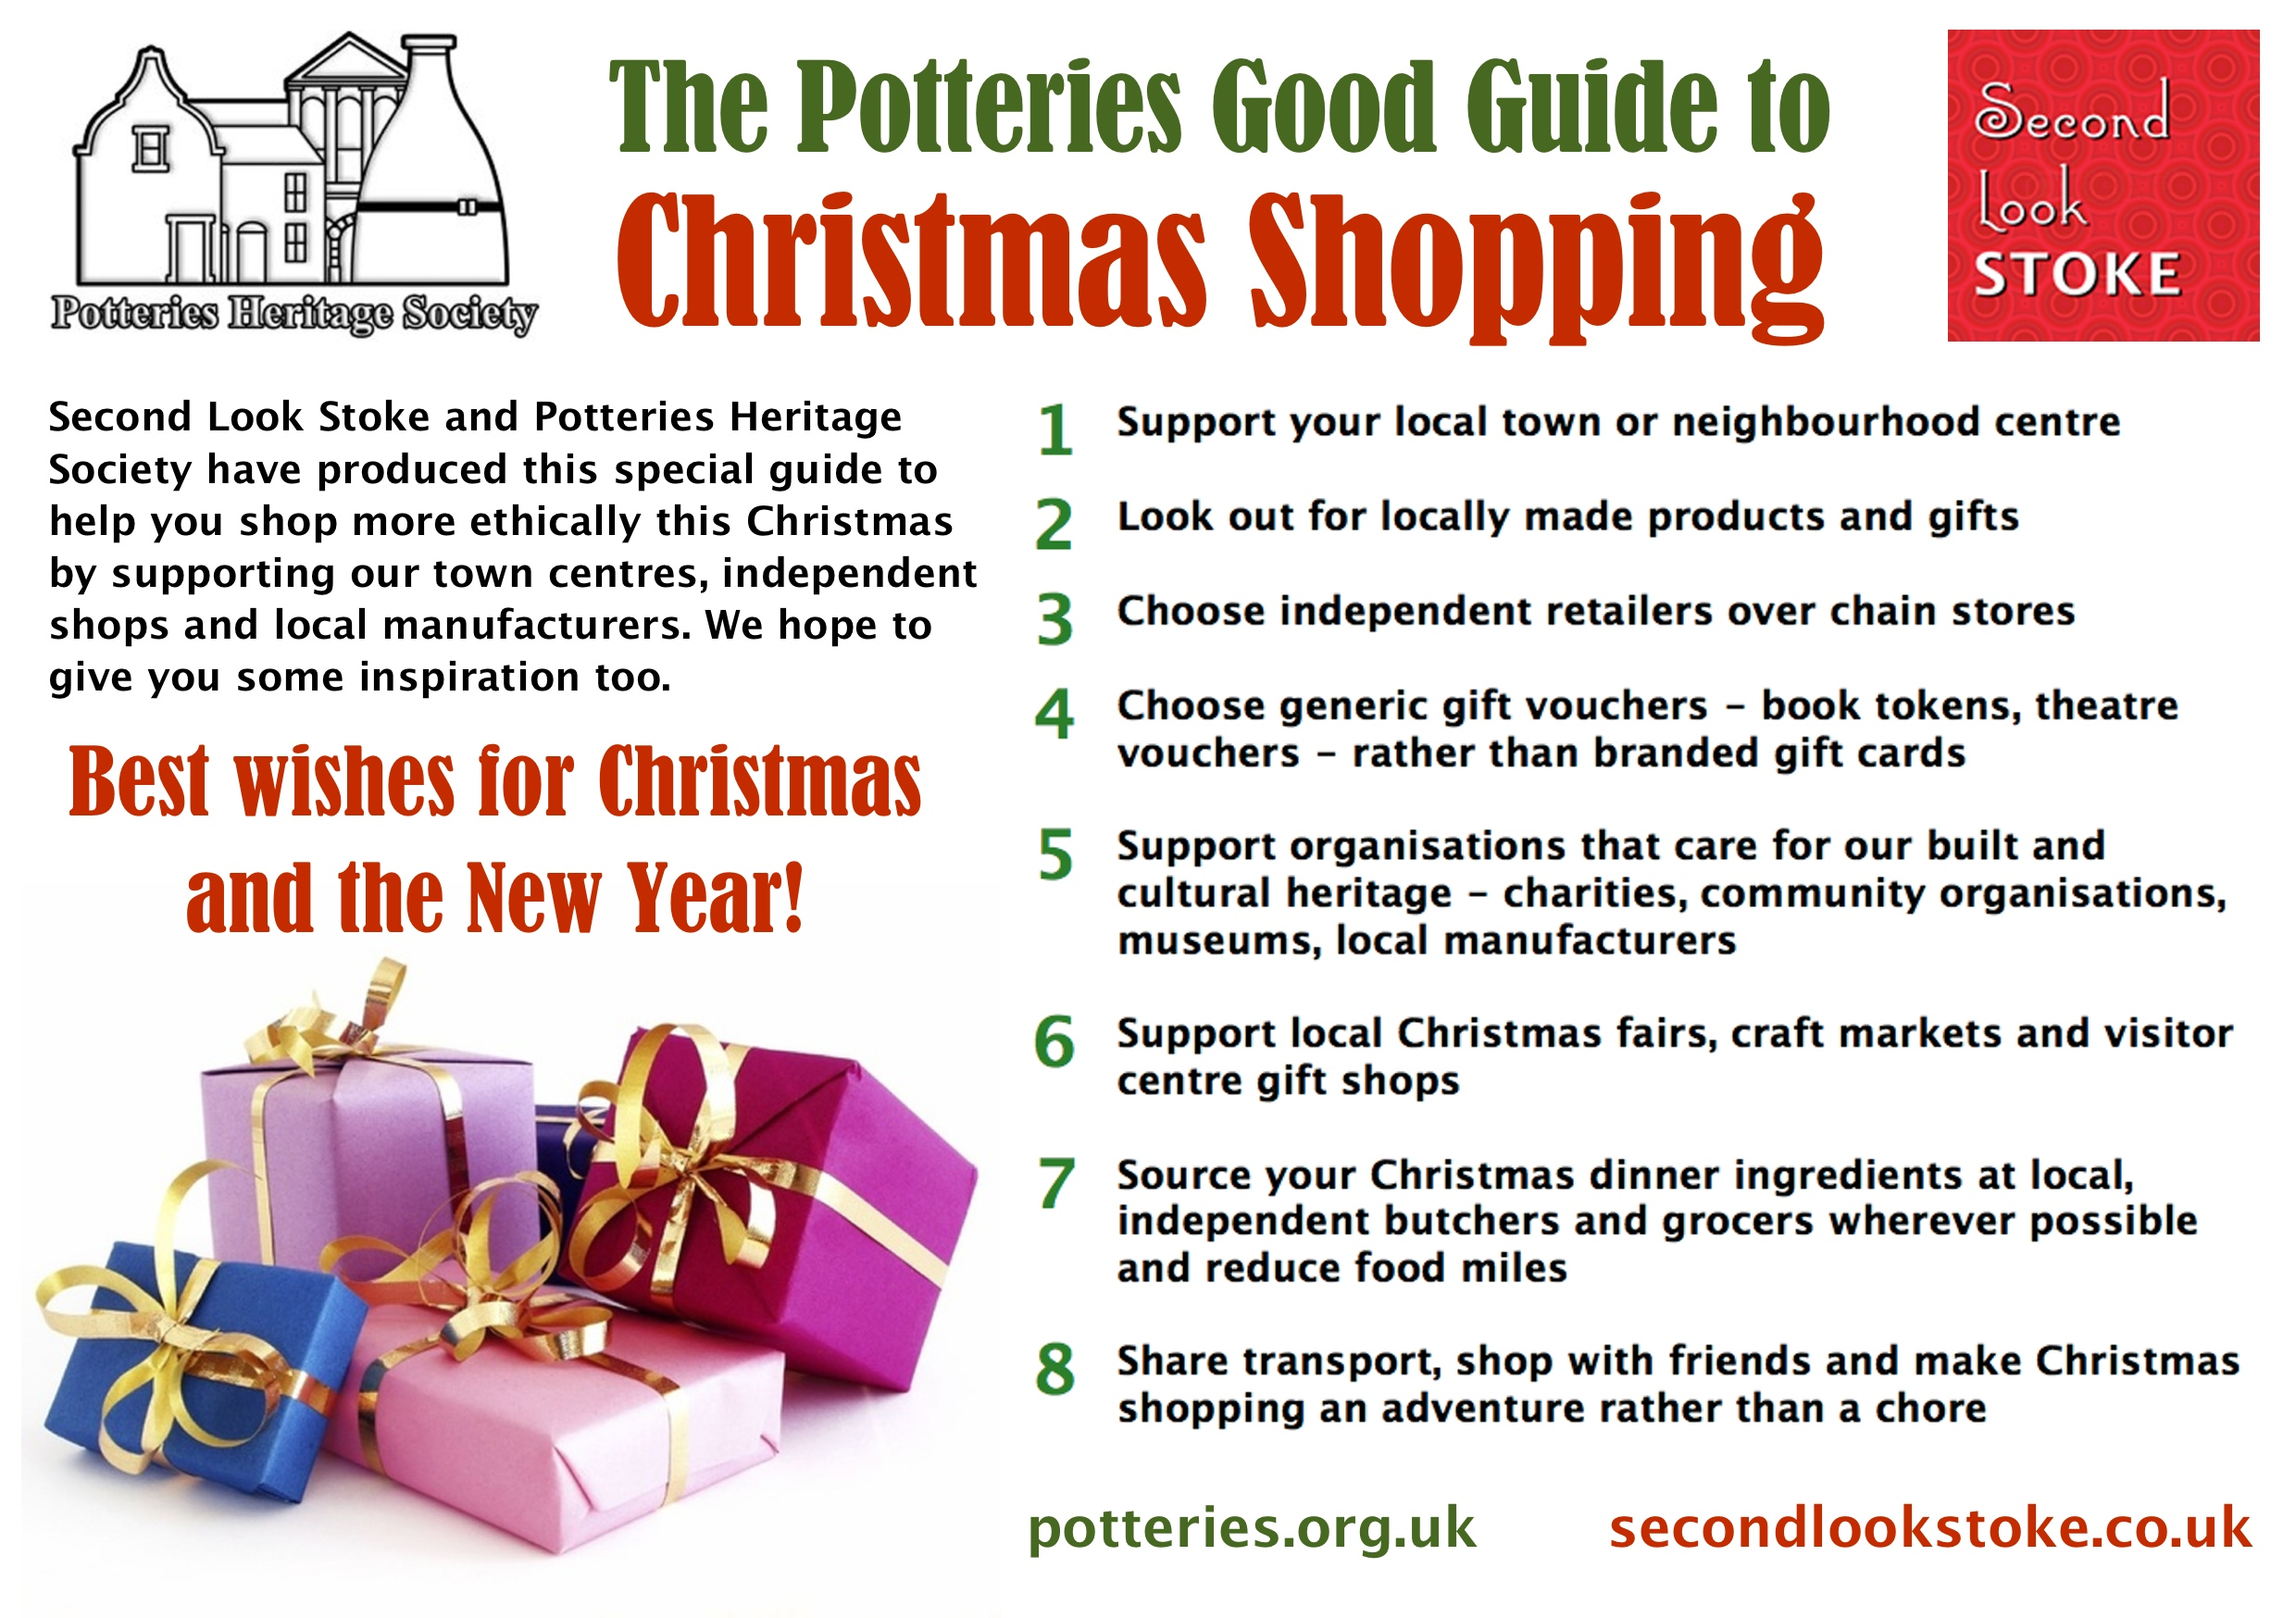 Potteries Good Guide to Christmas Shopping